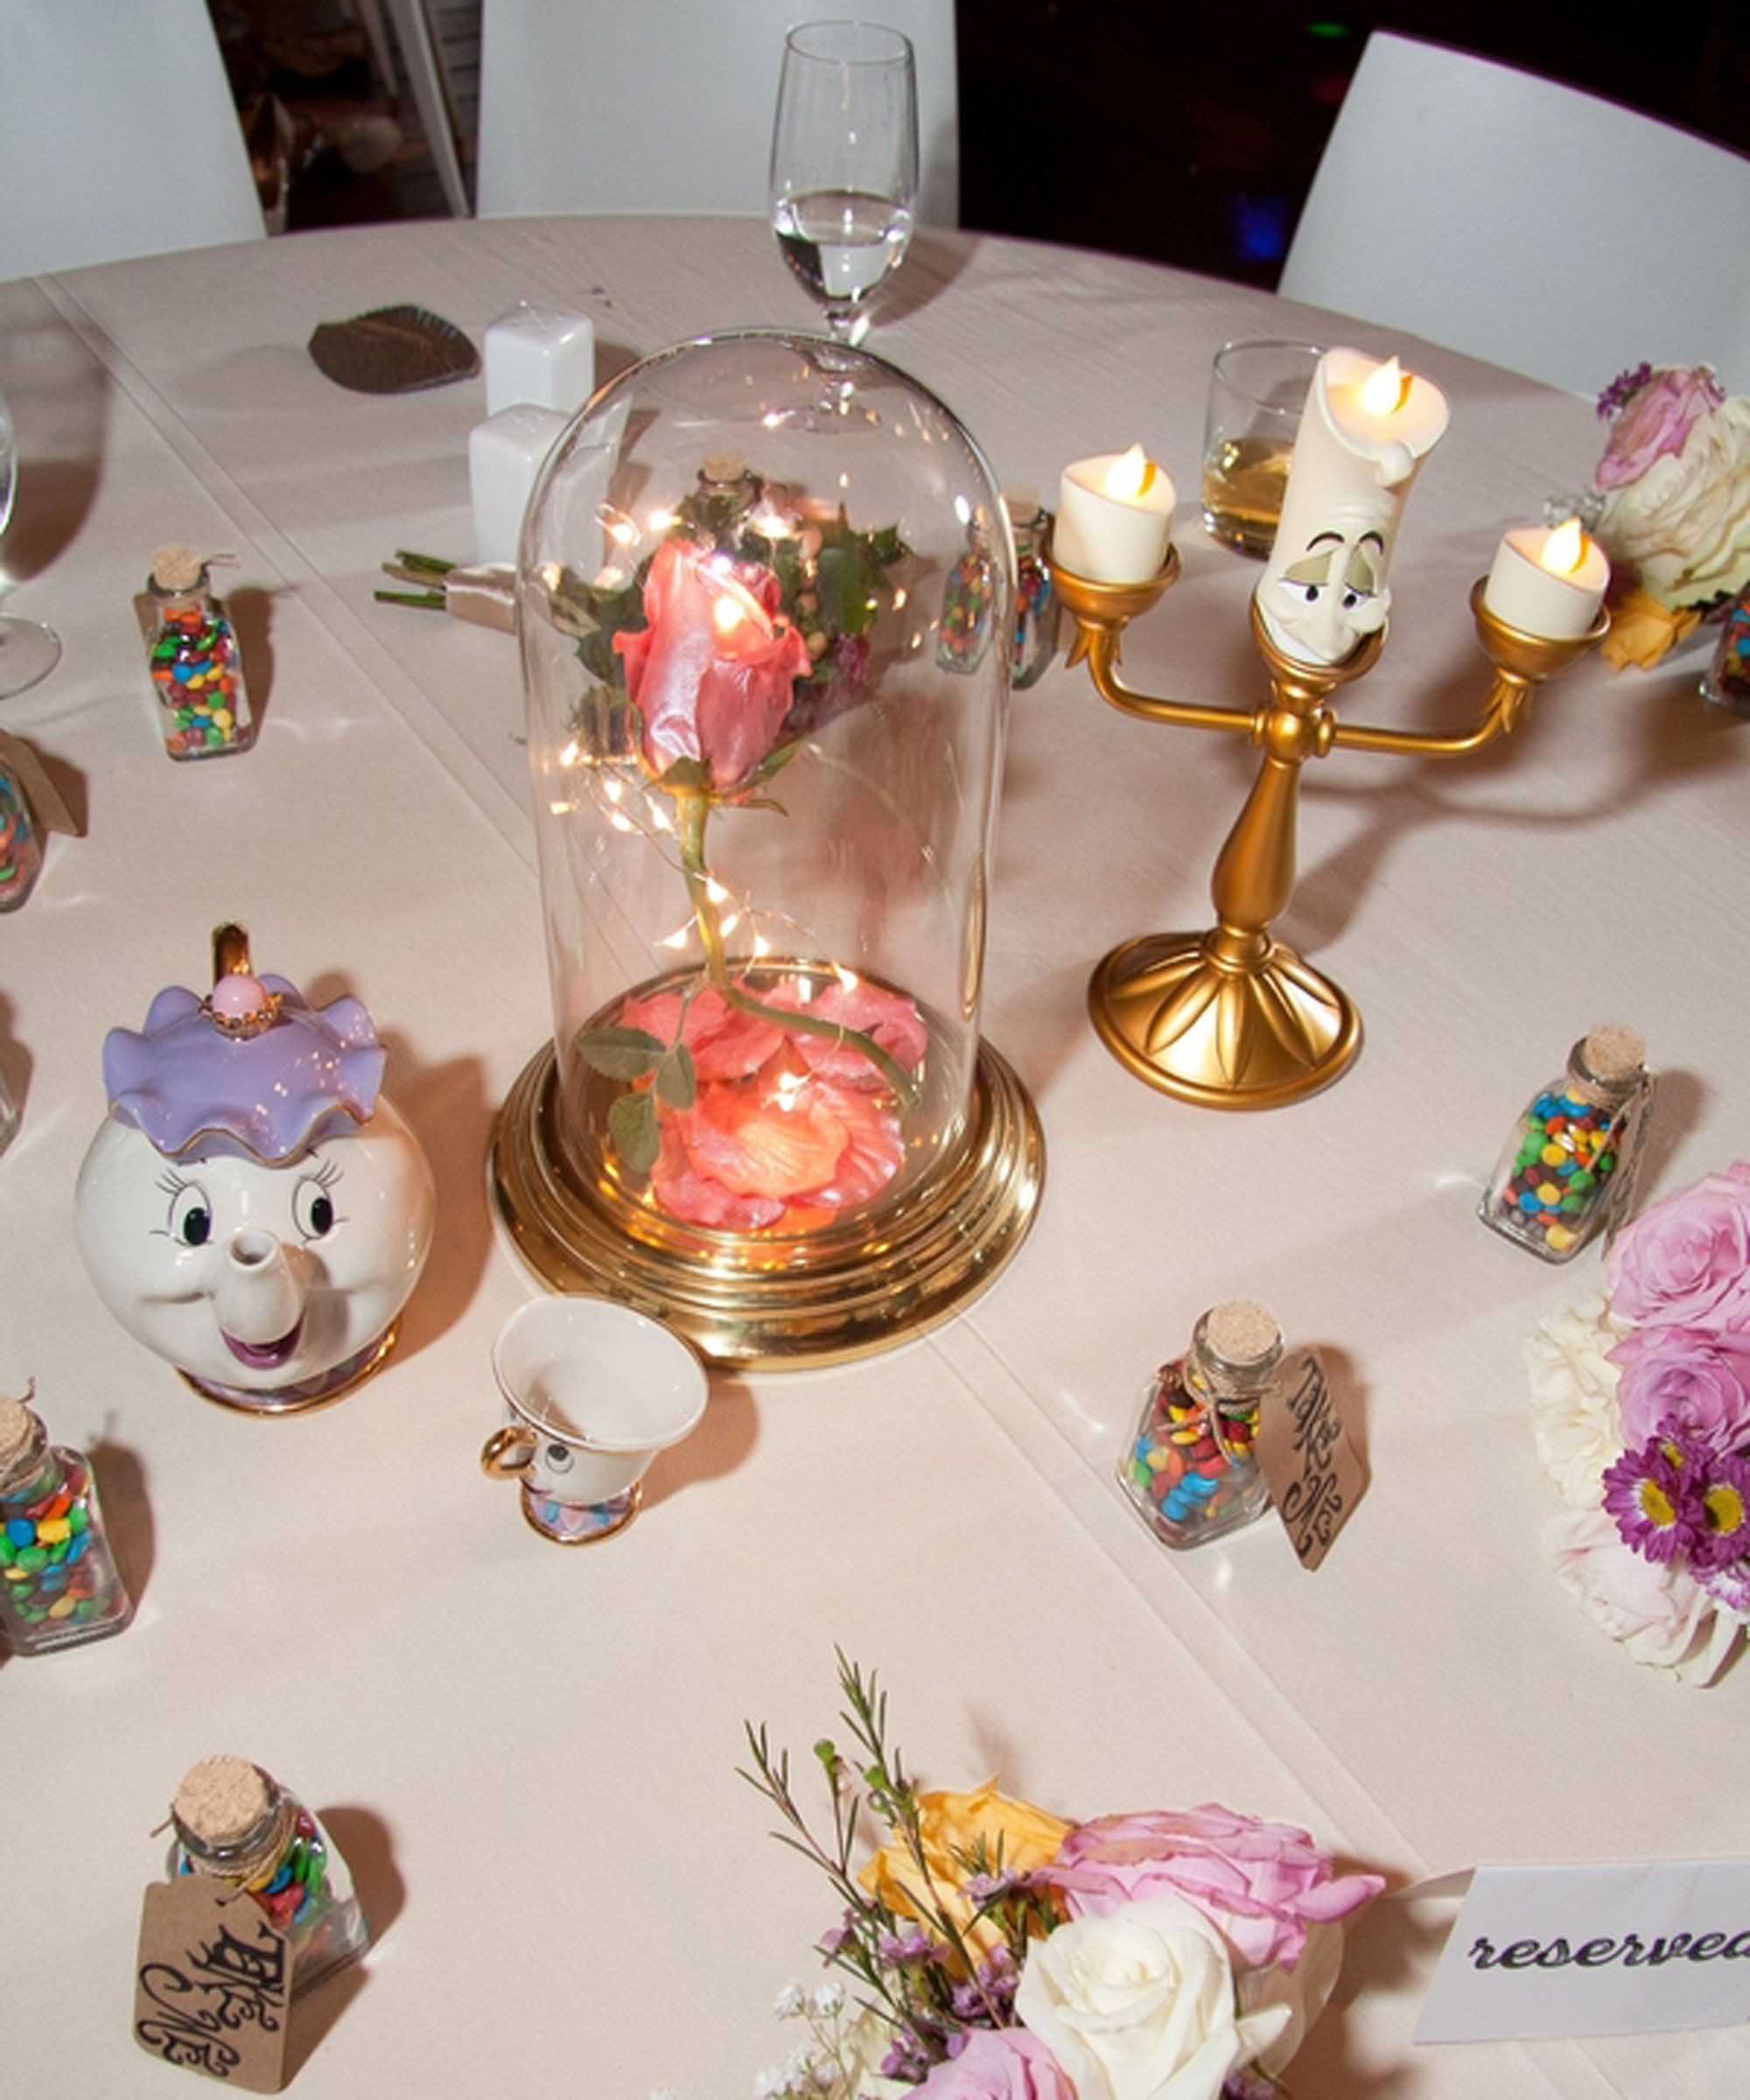 Best ideas about DIY Centerpieces For Wedding Receptions . Save or Pin Disney DIY Wedding Reception Centerpieces Now.